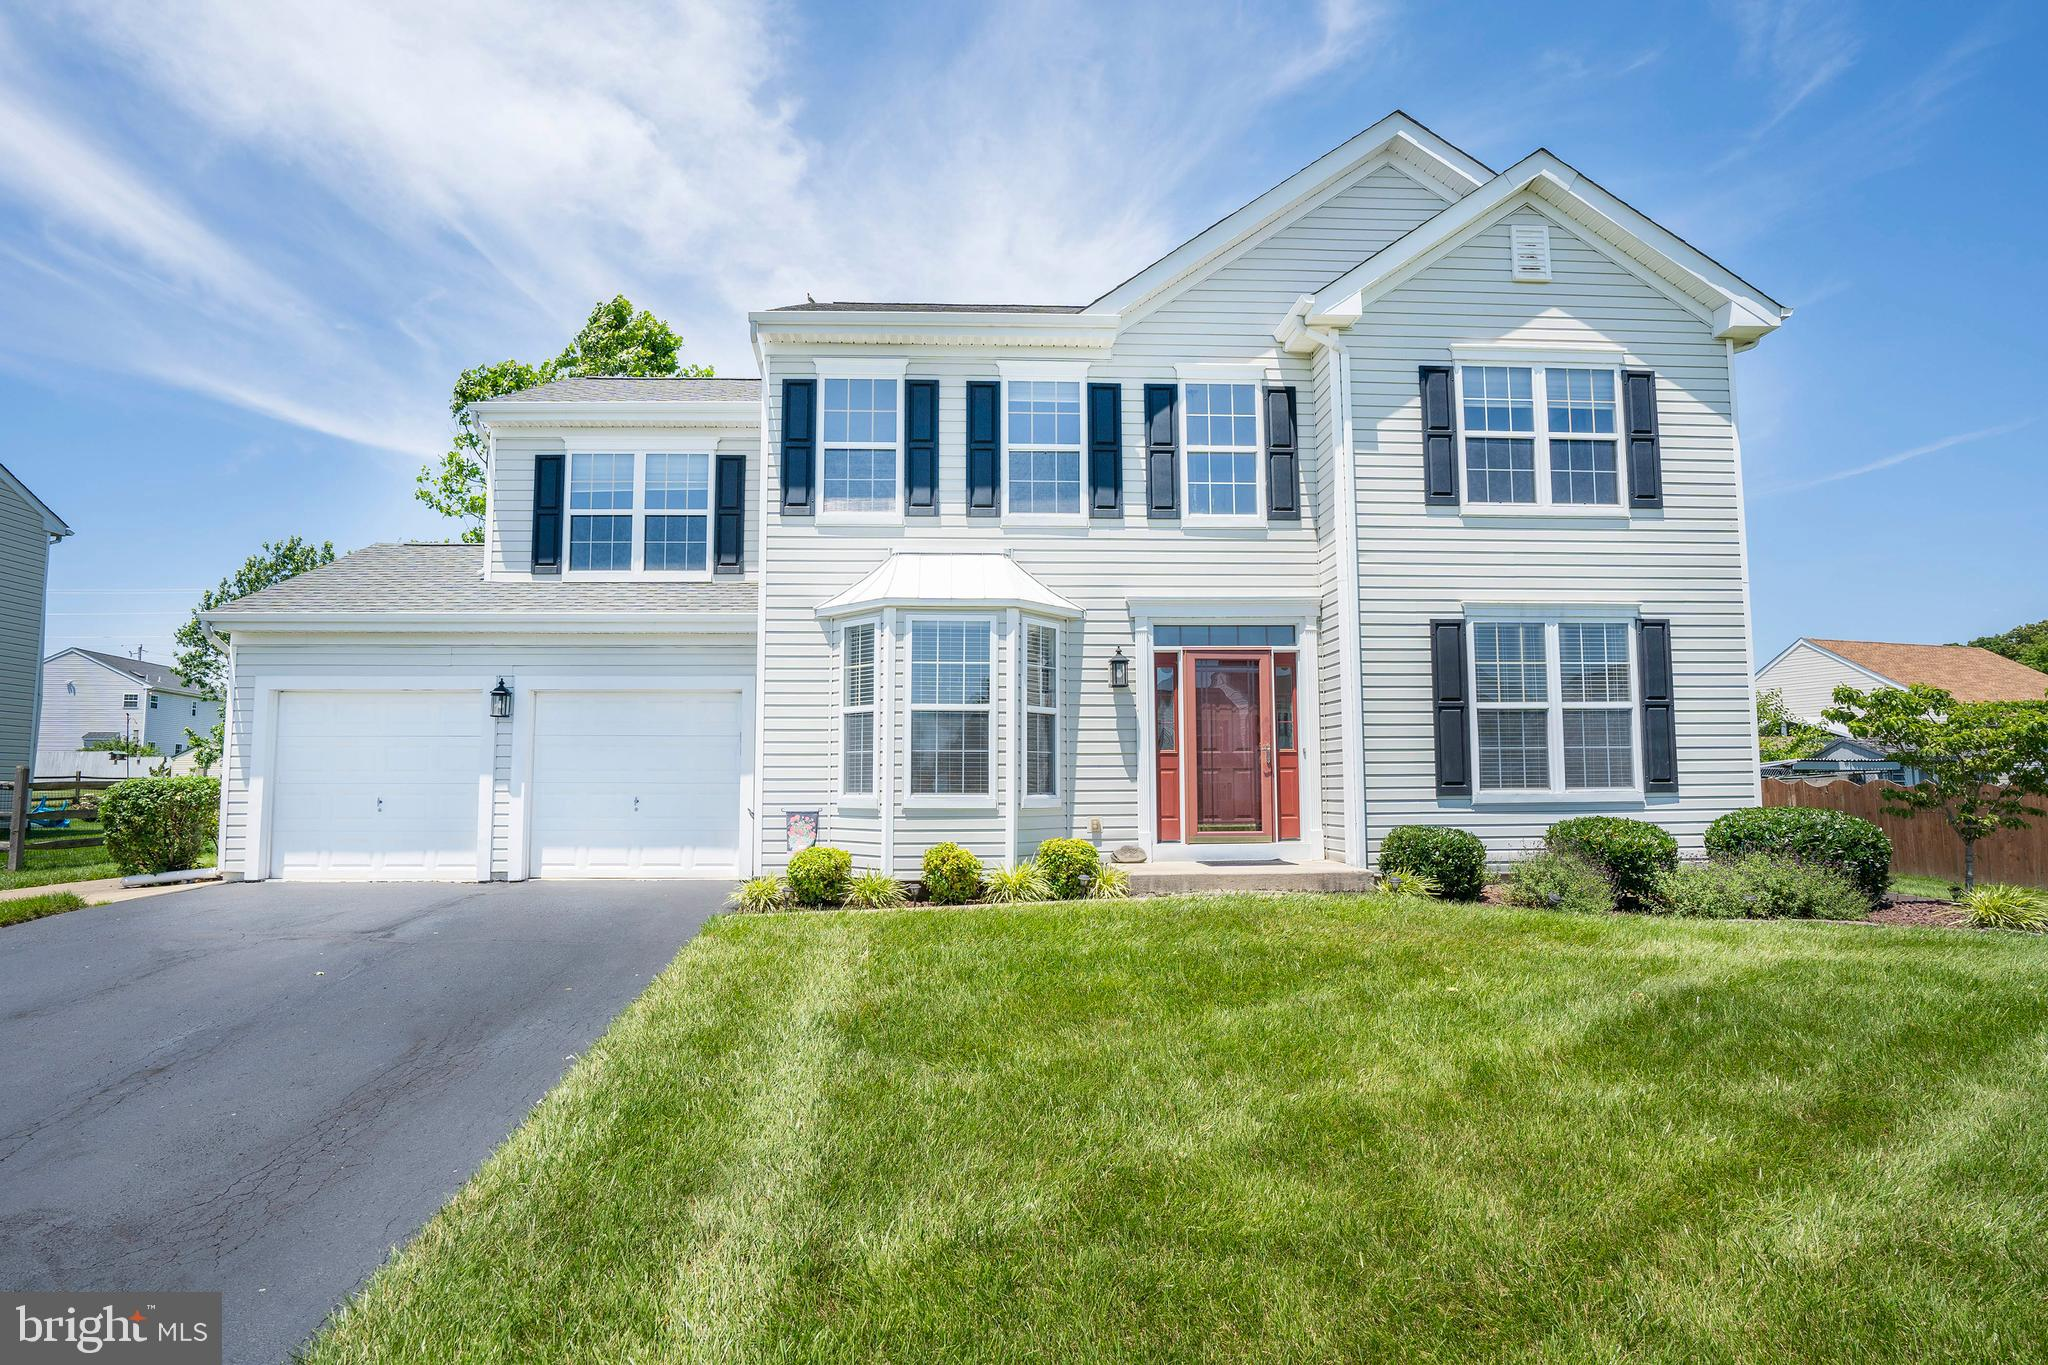 RIVEREDGE ESTATES - Beautifully maintained 4-Bedroom, 2.5-Bathroom Colonial located in a unique river-front community.  Arrive to find plenty of parking space, with a 2-CAR GARAGE and private driveway.  Enter into the 2-story foyer where you will find neutral paint & HARDWOOD FLOORS that run throughout the entire first floor.  To the right you will find the formal living room & to the left you will find the formal dining room.  The dining room boasts chair rail molding, a chandelier, and beautiful bay windows that allow plenty of sunlight to flow throughout.  Just off the dining room is the kitchen.  The kitchen features: STAINLESS STEEL APPLIANCES, tile backsplash, recessed lights and low-maintenance QUARTZ COUNTERTOPS!  Sliders from the kitchen lead to the large back patio that looks out upon the yard.  The yard backs to a tree line & a SHED IS INCLUDED for all of your outdoor storage needs!  Back inside and open to the kitchen is the family room, perfect for entertaining!  Also on the main level is a powder room, laundry room, and access to the garage.  Head upstairs to find 4 bedrooms and 2 full baths.  The master suite flaunts vaulted ceilings, a WALK-IN CLOSET, & a 5-piece master bathroom.  The master bath includes a double vanity, a stall shower, and a jacuzzi tub.  The remaining bedrooms are all of good size & another full bath can be found down the hall.  An unfinished basement (with bilco door access to the yard) offers tons of storage space and the possibility of finishing off for added living space.  Other notable features include: NEWER HVAC (2017), NEWER ROOF (2016), NEW CARPET & NEW HARDWOOD THROUGHOUT!  Located in a unique, serene community with views of the Delaware River all along Riveredge Drive and access to a PRIVATE BEACH.  Within minutes of major local roadways, DE-13, DE-1, DE-40, & DE-273.  Don't wait, call today to schedule your tour before it's too late!